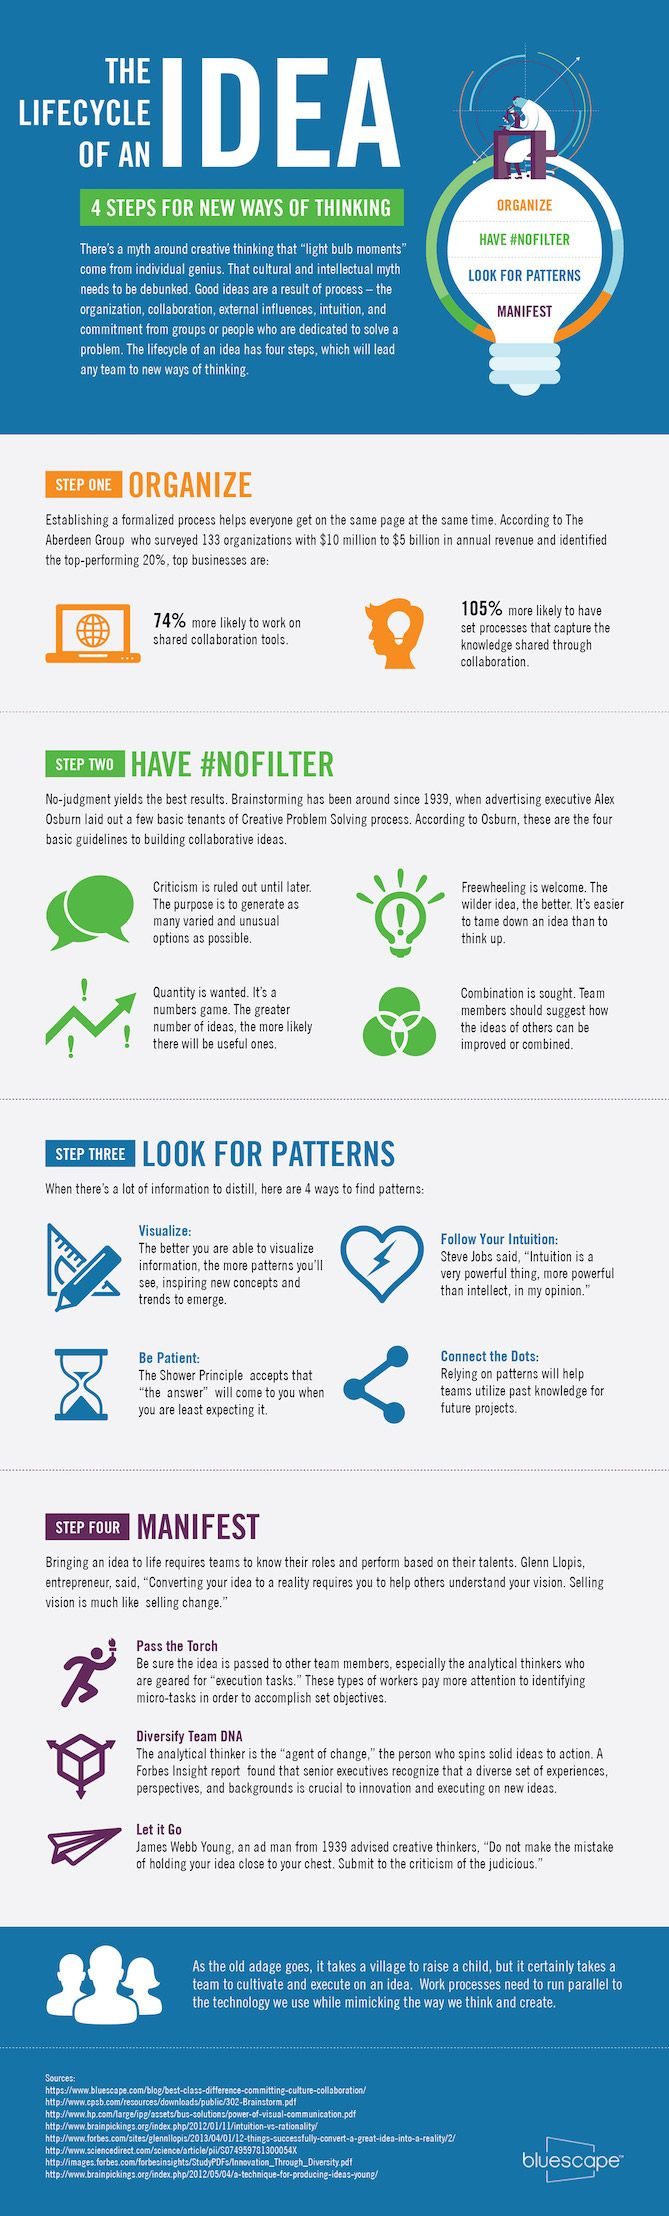 Want to have better ideas at work (and in life)? Check out this infographic of the lifecycle of an idea to learn how to cultivate an effective idea generation strategy.